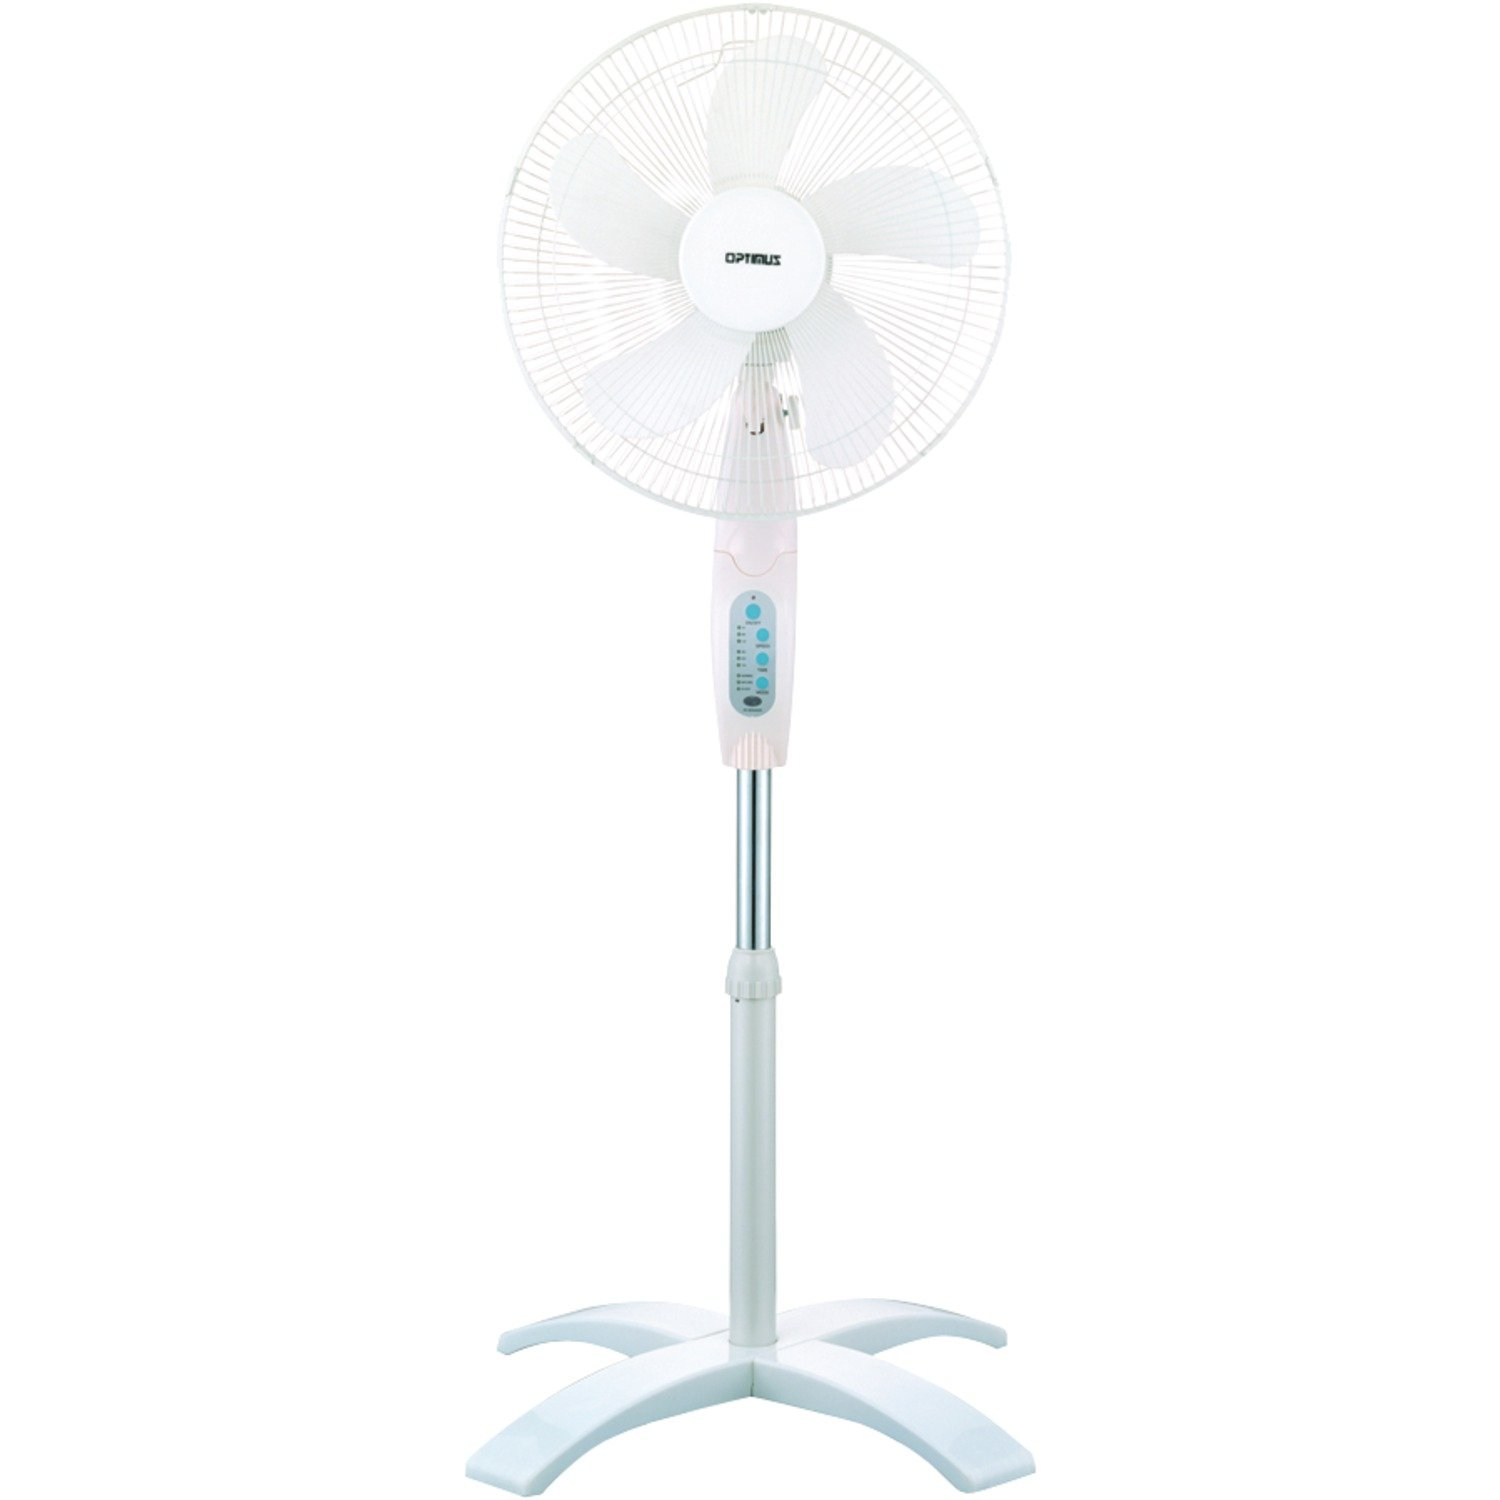 lake pedestal oscillating watch fan youtube breeze